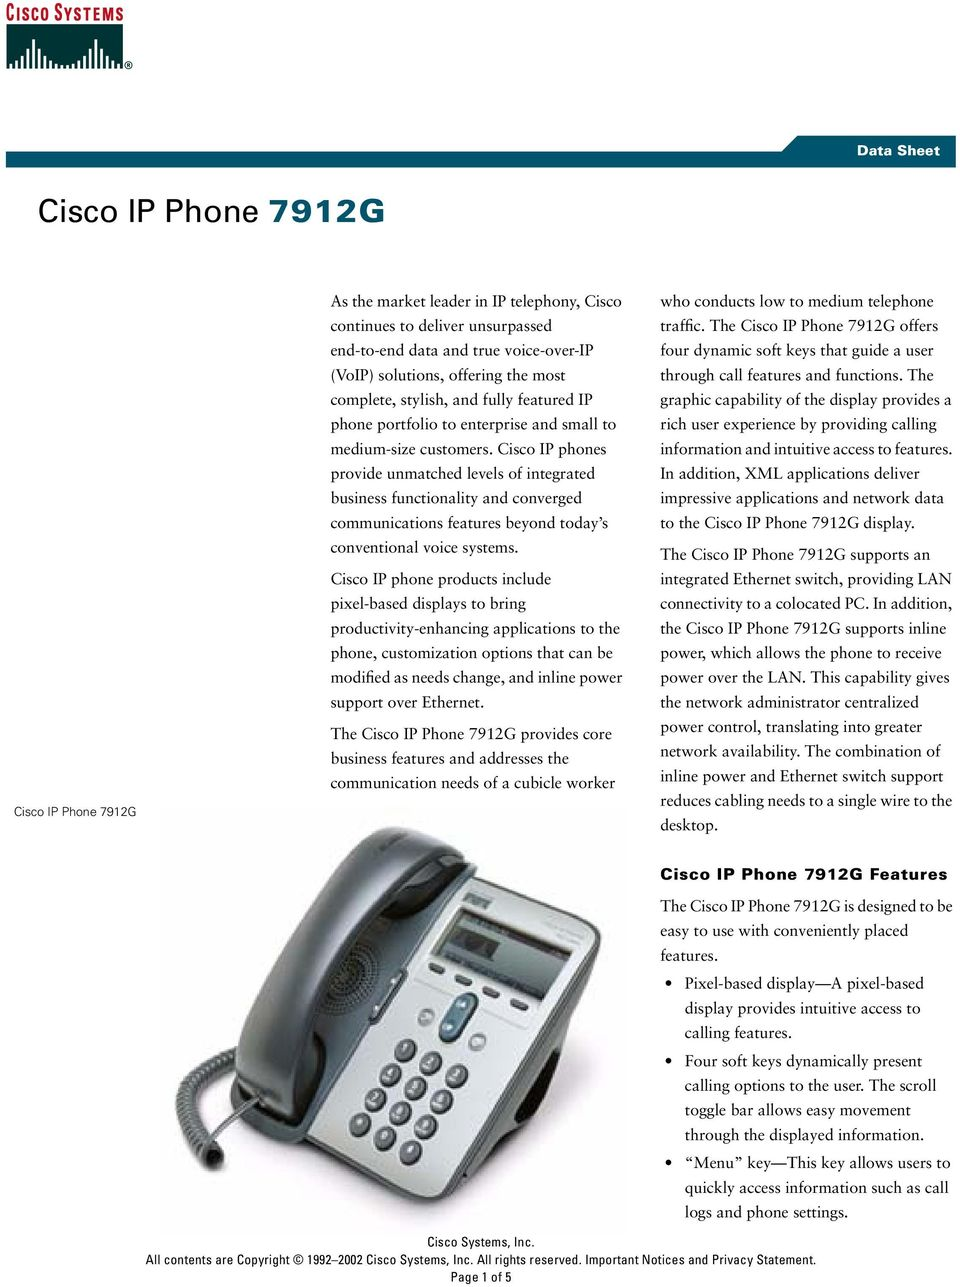 Cisco IP phones provide unmatched levels of integrated business functionality and converged communications features beyond today s conventional voice systems.